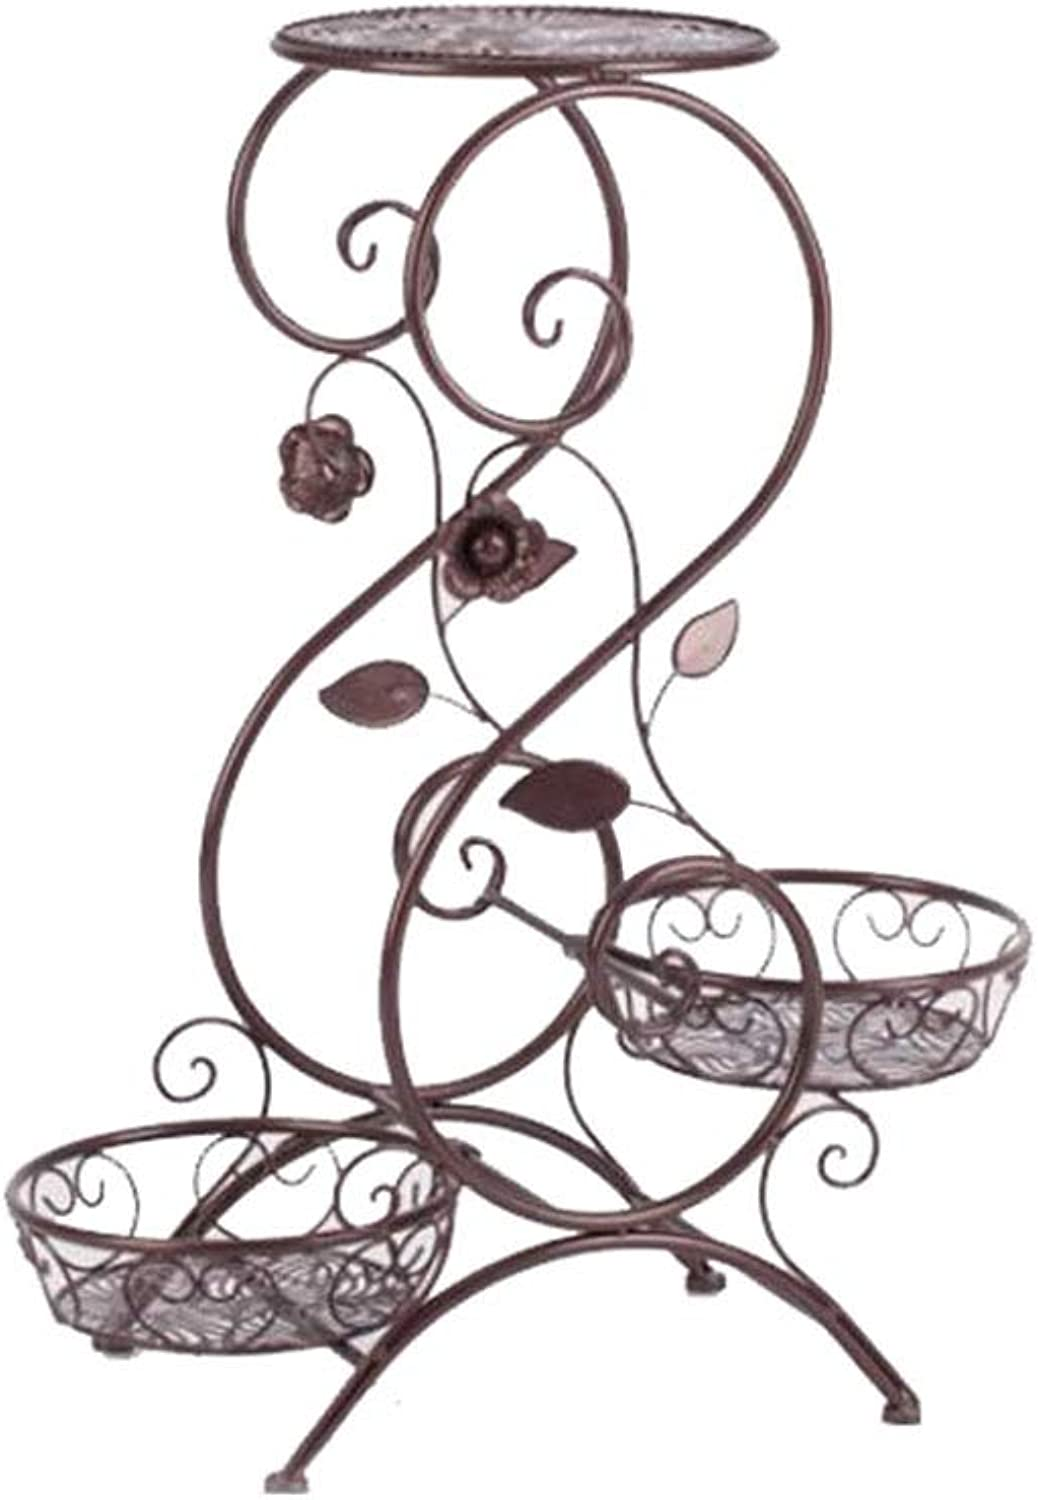 MBD S-Shaped European Iron 3 Layer Plant Pot Holder Rack for Living Room Bedroom Balcony Indoor Brown 25.6  12.6  9.4in